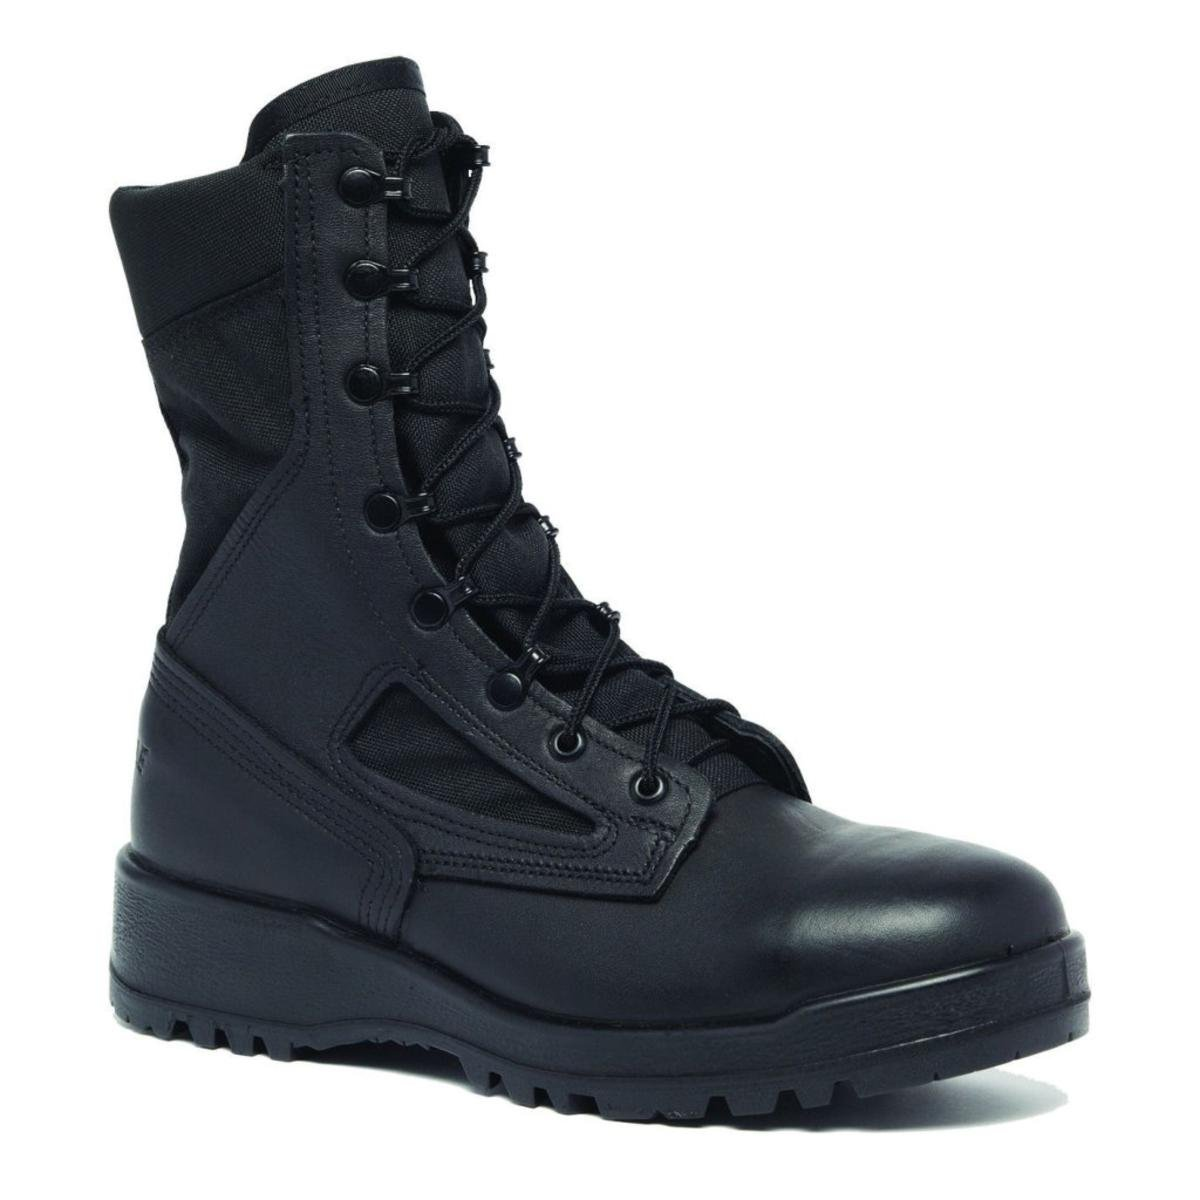 Belleville Men's Hot Weather Combat Boot B01EXA21PY 11 2E US|Black